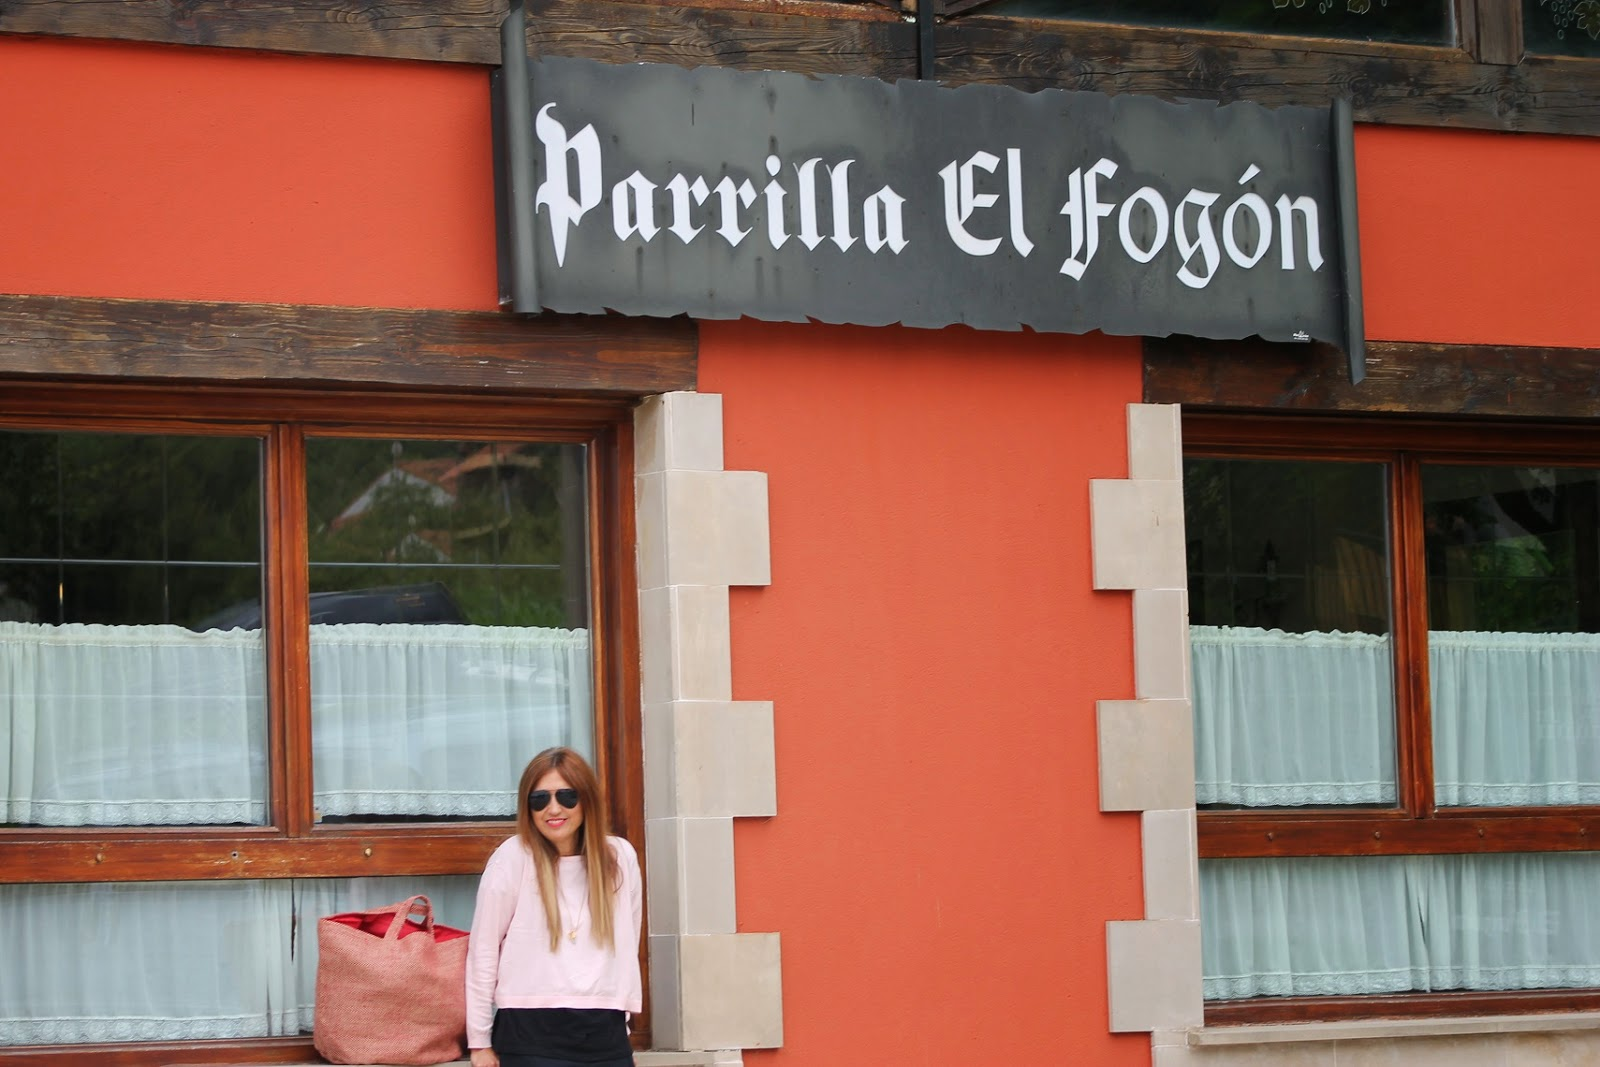 Parrilla el Fogón, Pechón, Cantabria, Travel, Eating, Summer, Holidays, Beach, Fashion Blogger, Street Style, Outfit, Carmen Hummer, Blog de moda